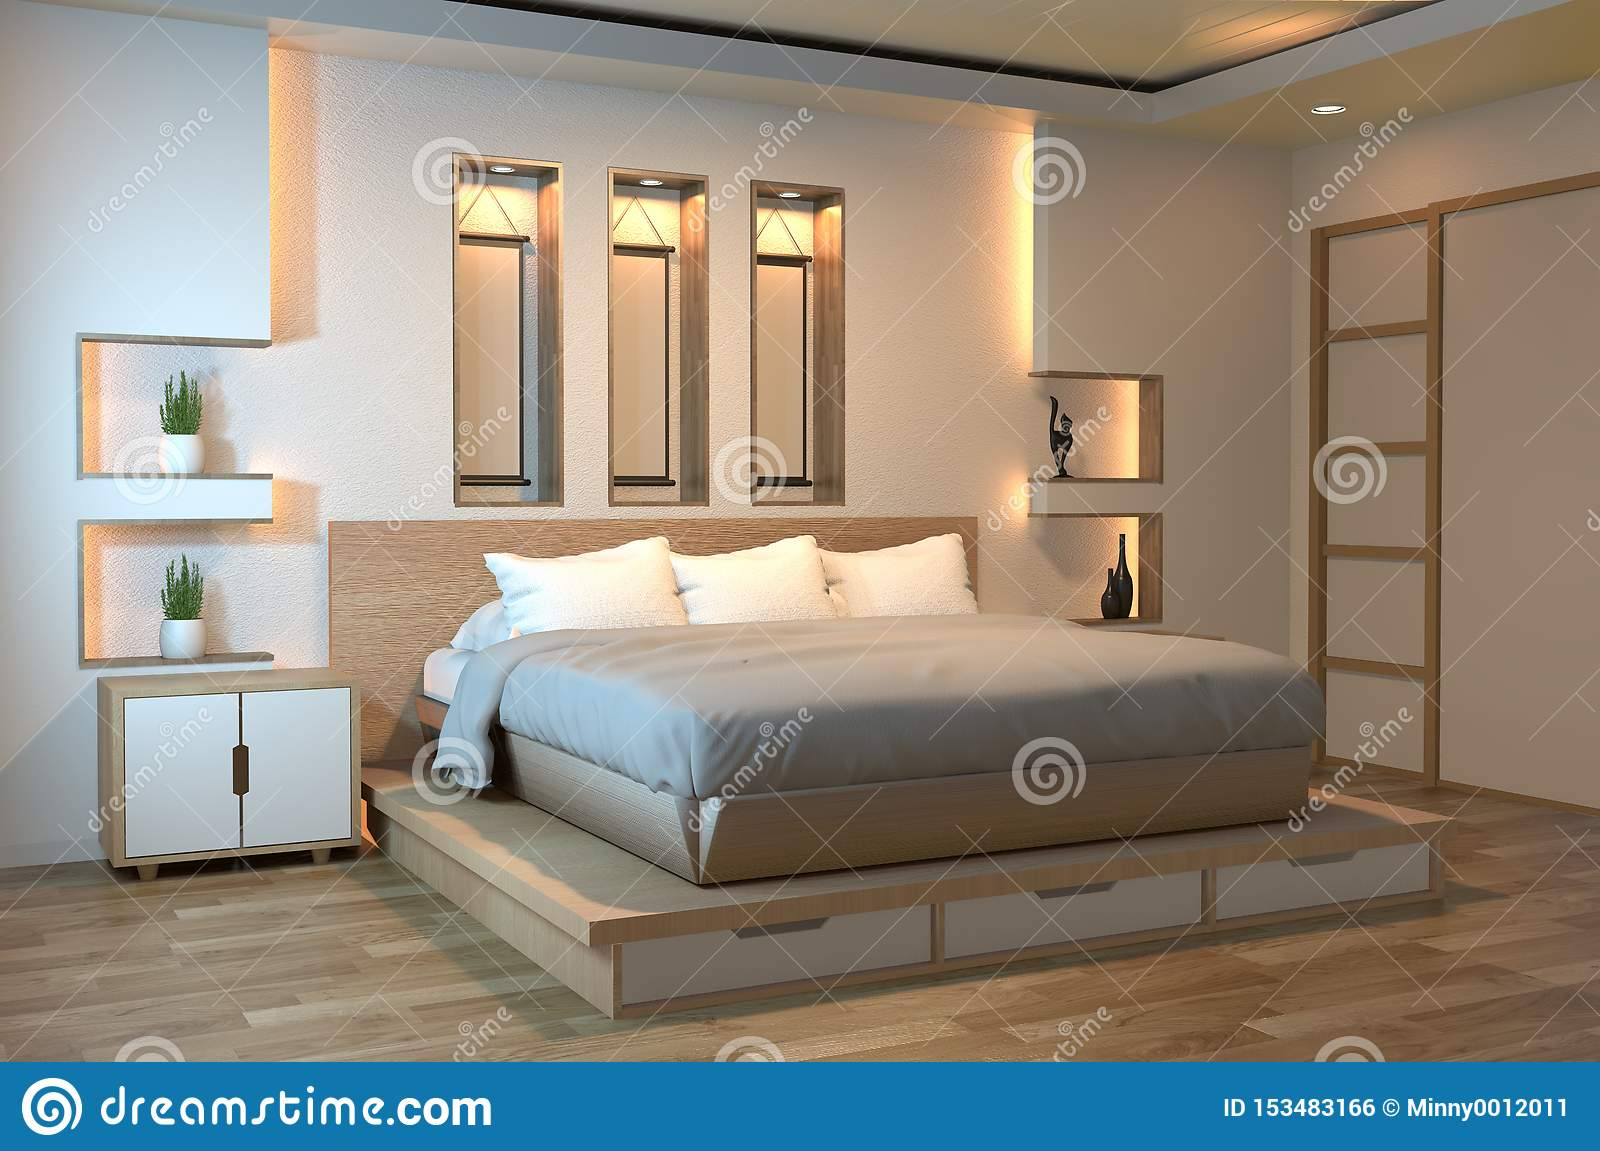 Modern Zen Peaceful Bedroom Japan Style Bedroom With Shelf Wall Design Hidden Light And Decoration Japanese Style 3d Rendering Stock Illustration Illustration Of Decoration Bedroom 153483166